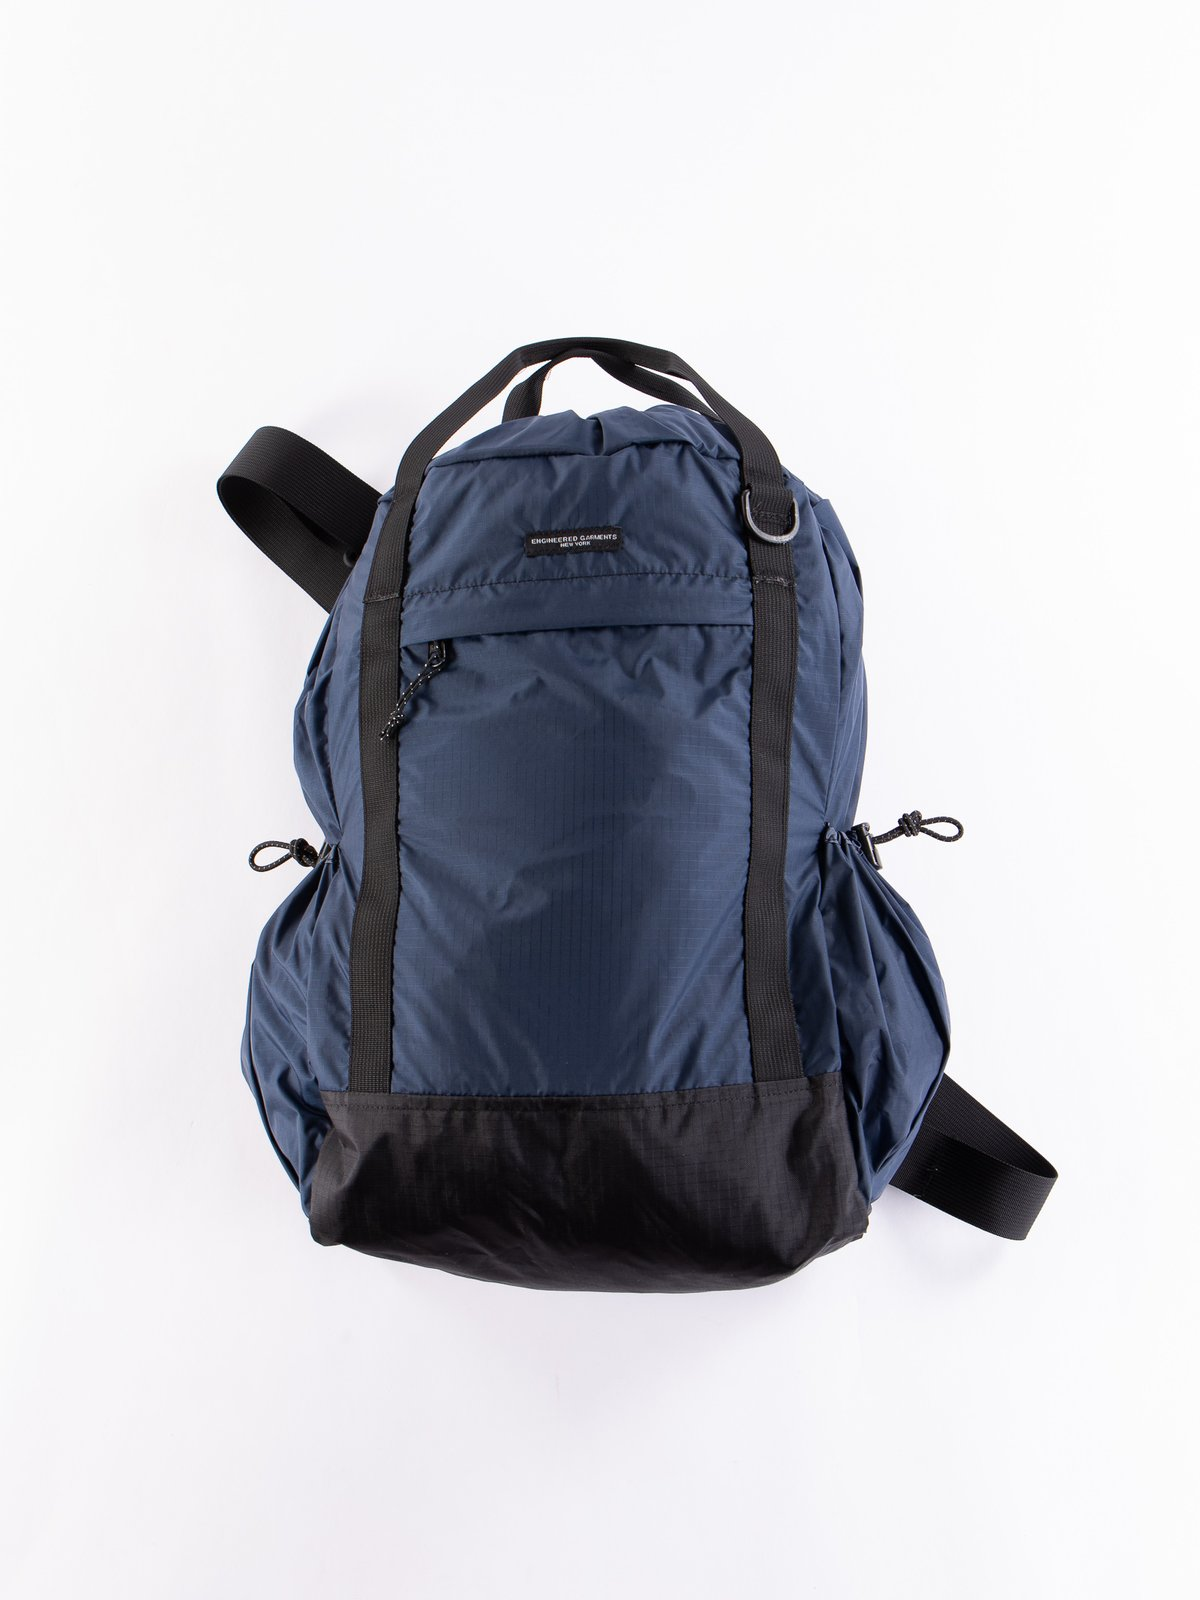 Navy Nylon Ripstop UL 3 Way Bag - Image 1